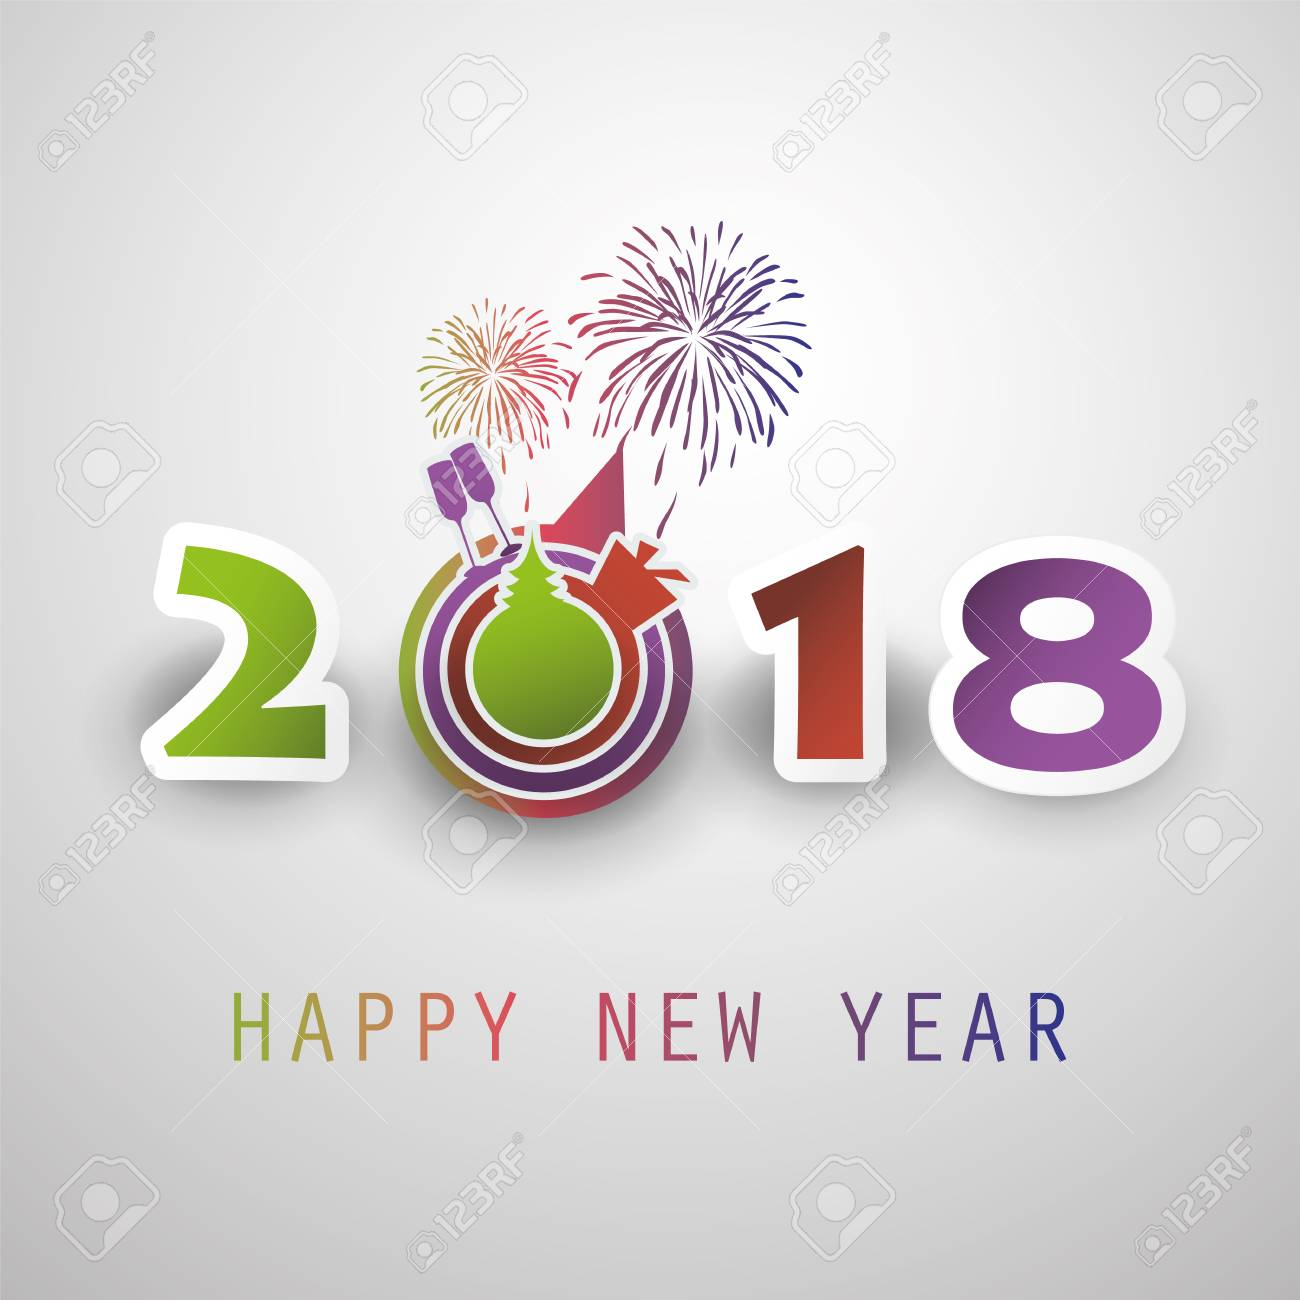 Best wishes abstract modern style happy 2018 new year greeting best wishes abstract modern style happy 2018 new year greeting card or background creative m4hsunfo